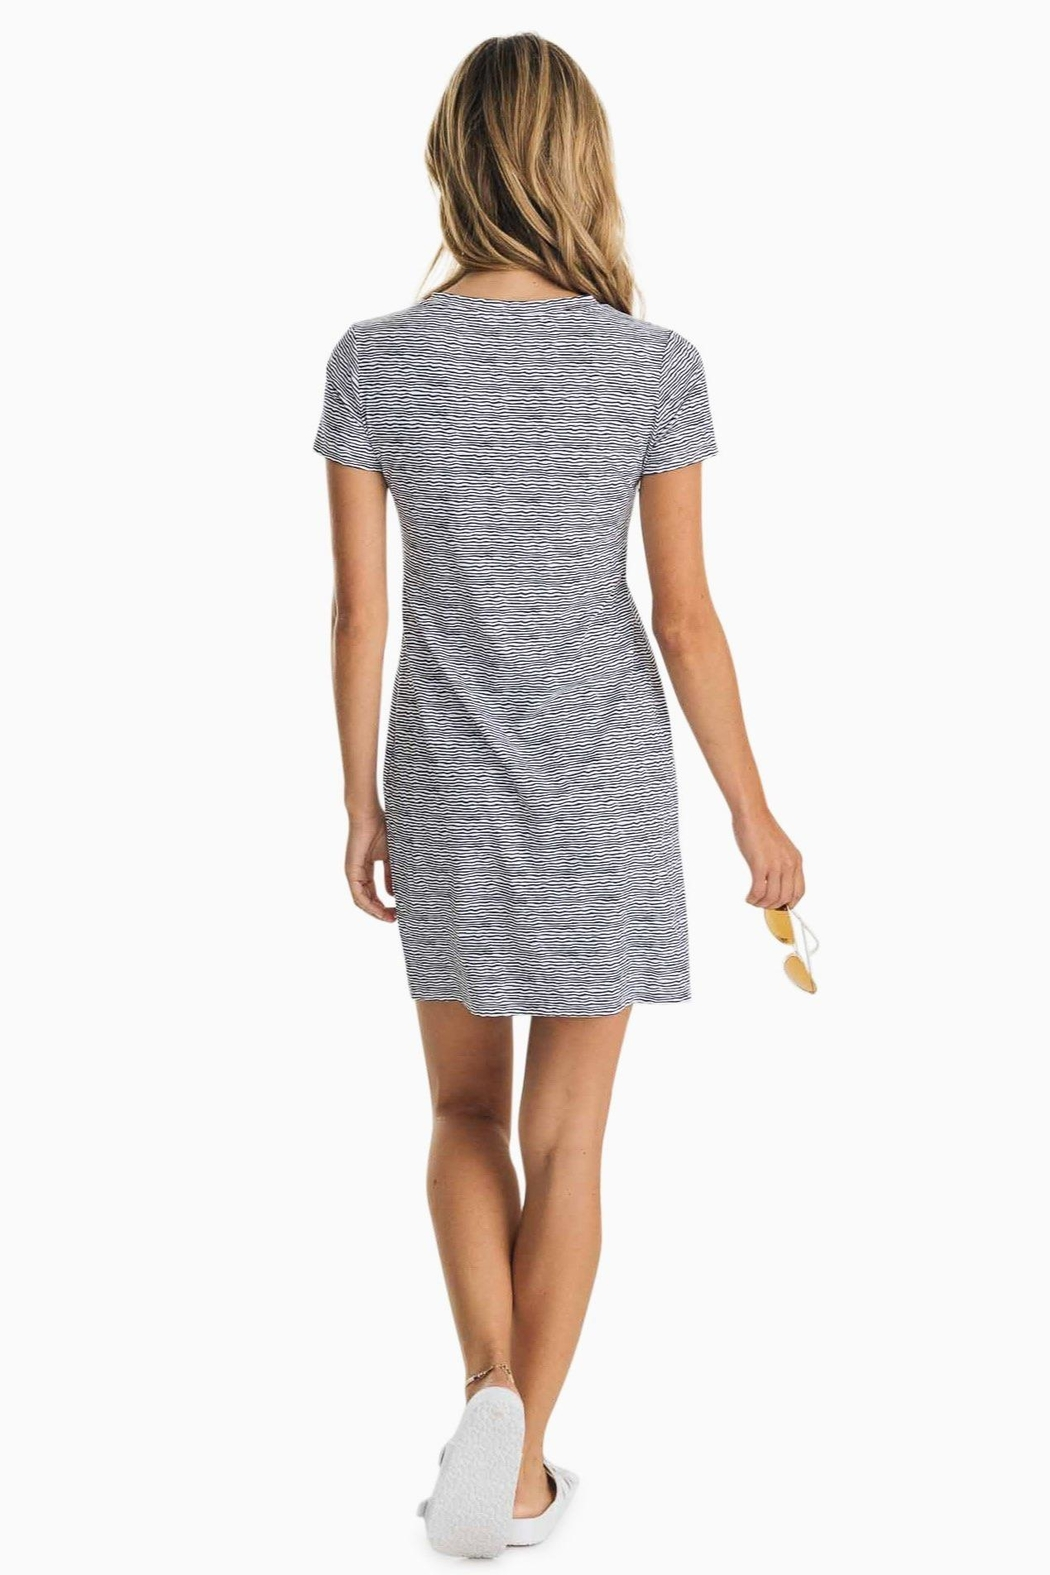 Southern Tide Amelia Performance Dress - Front Full Image